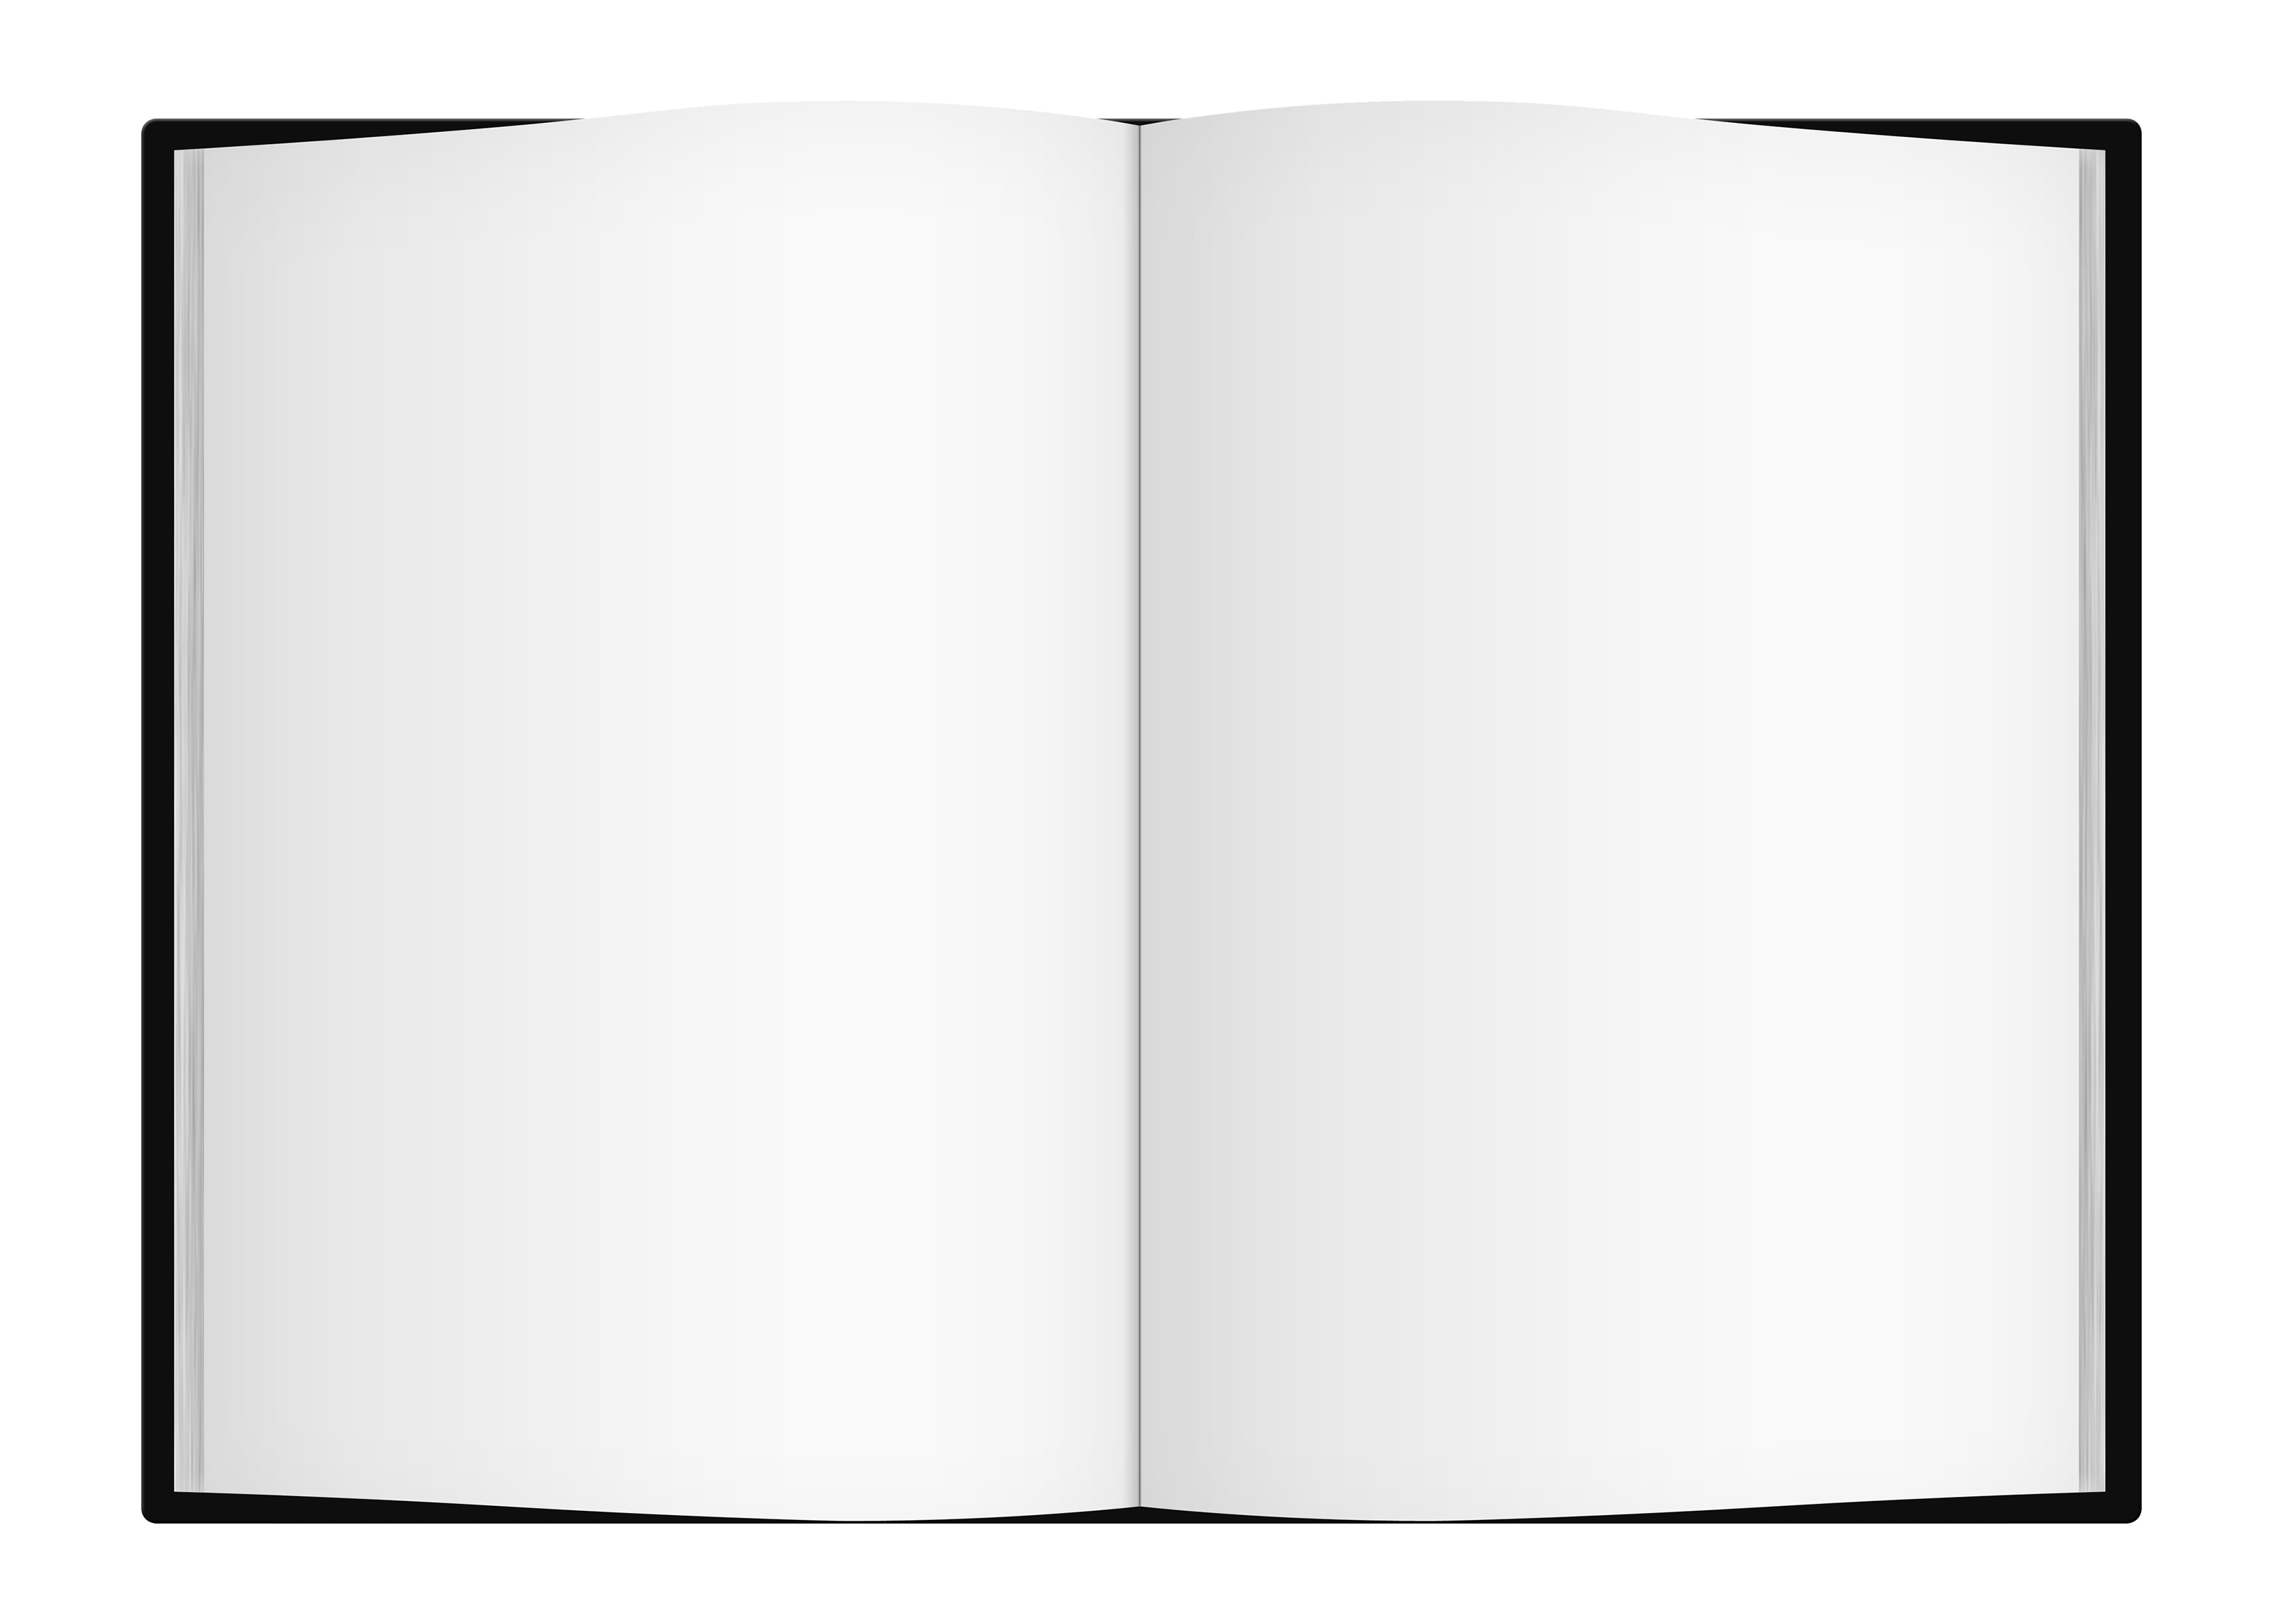 blank book png image purepng free transparent cc0 png image library